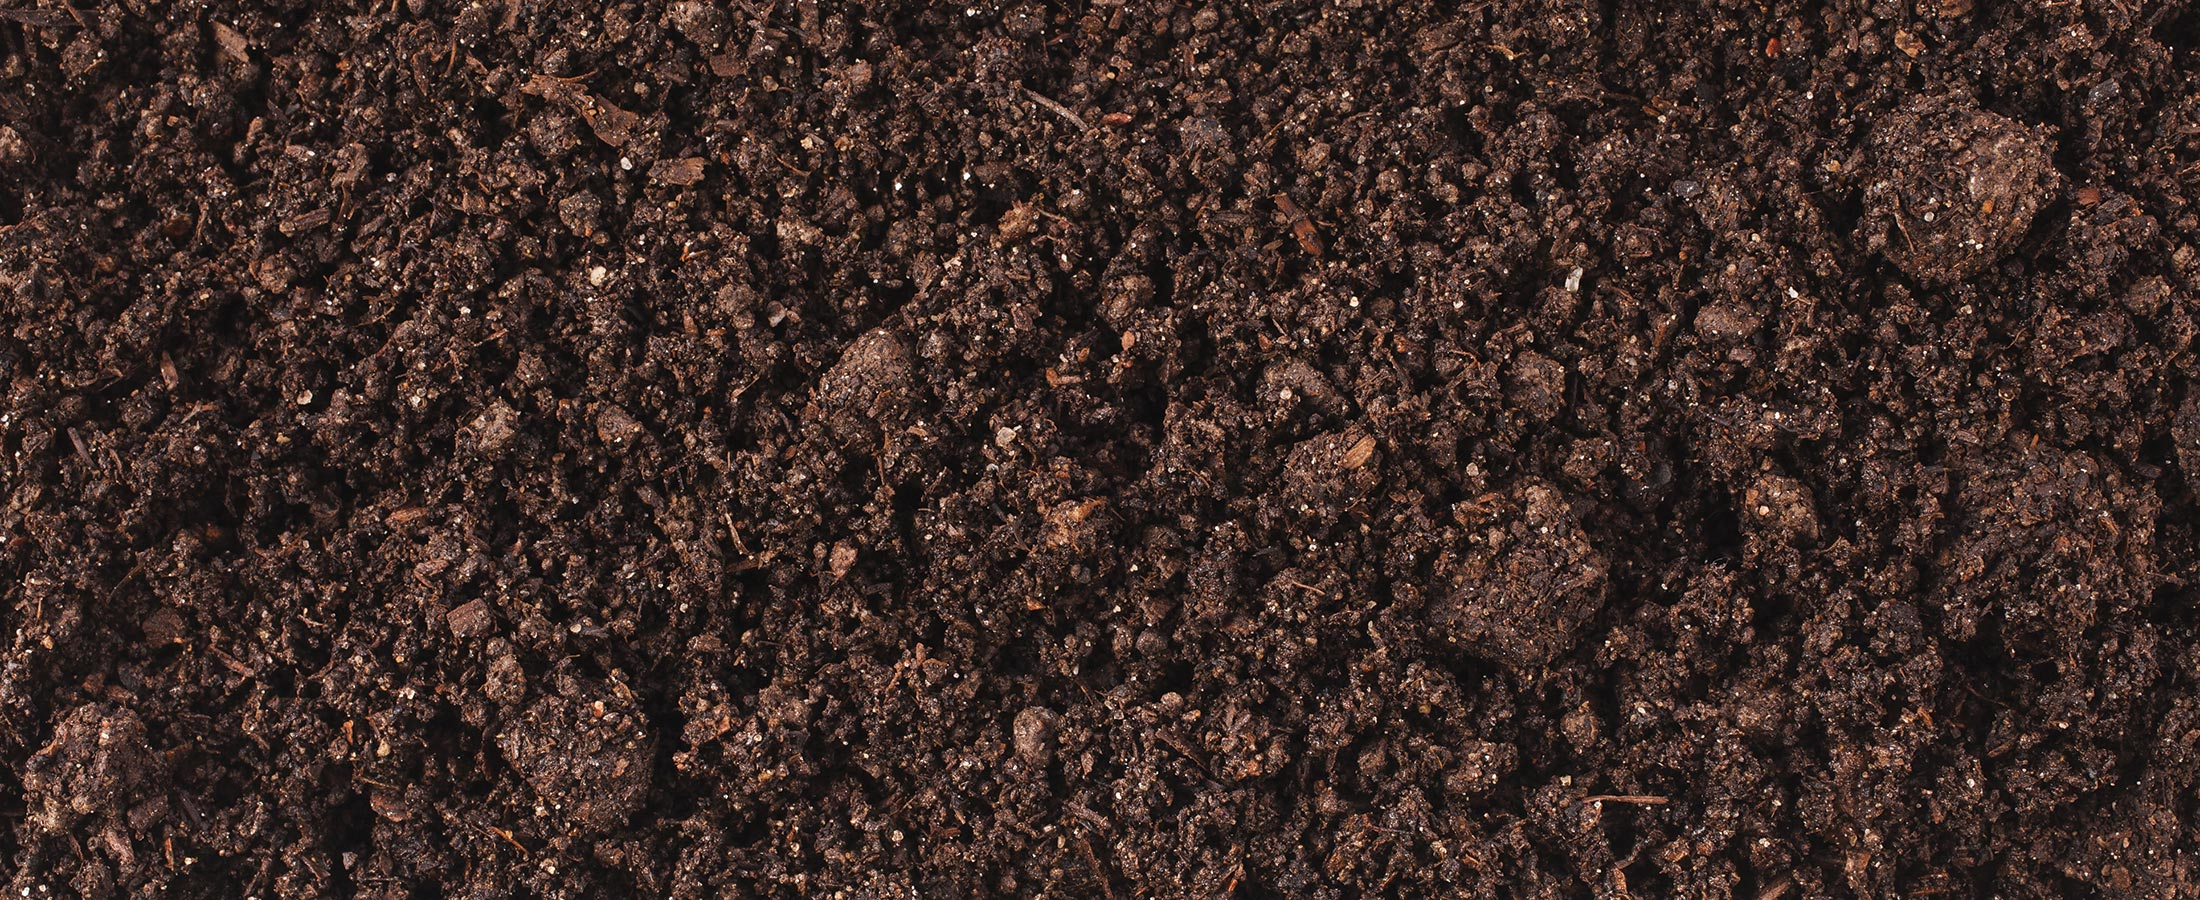 Soil biotics for Soil vs dirt